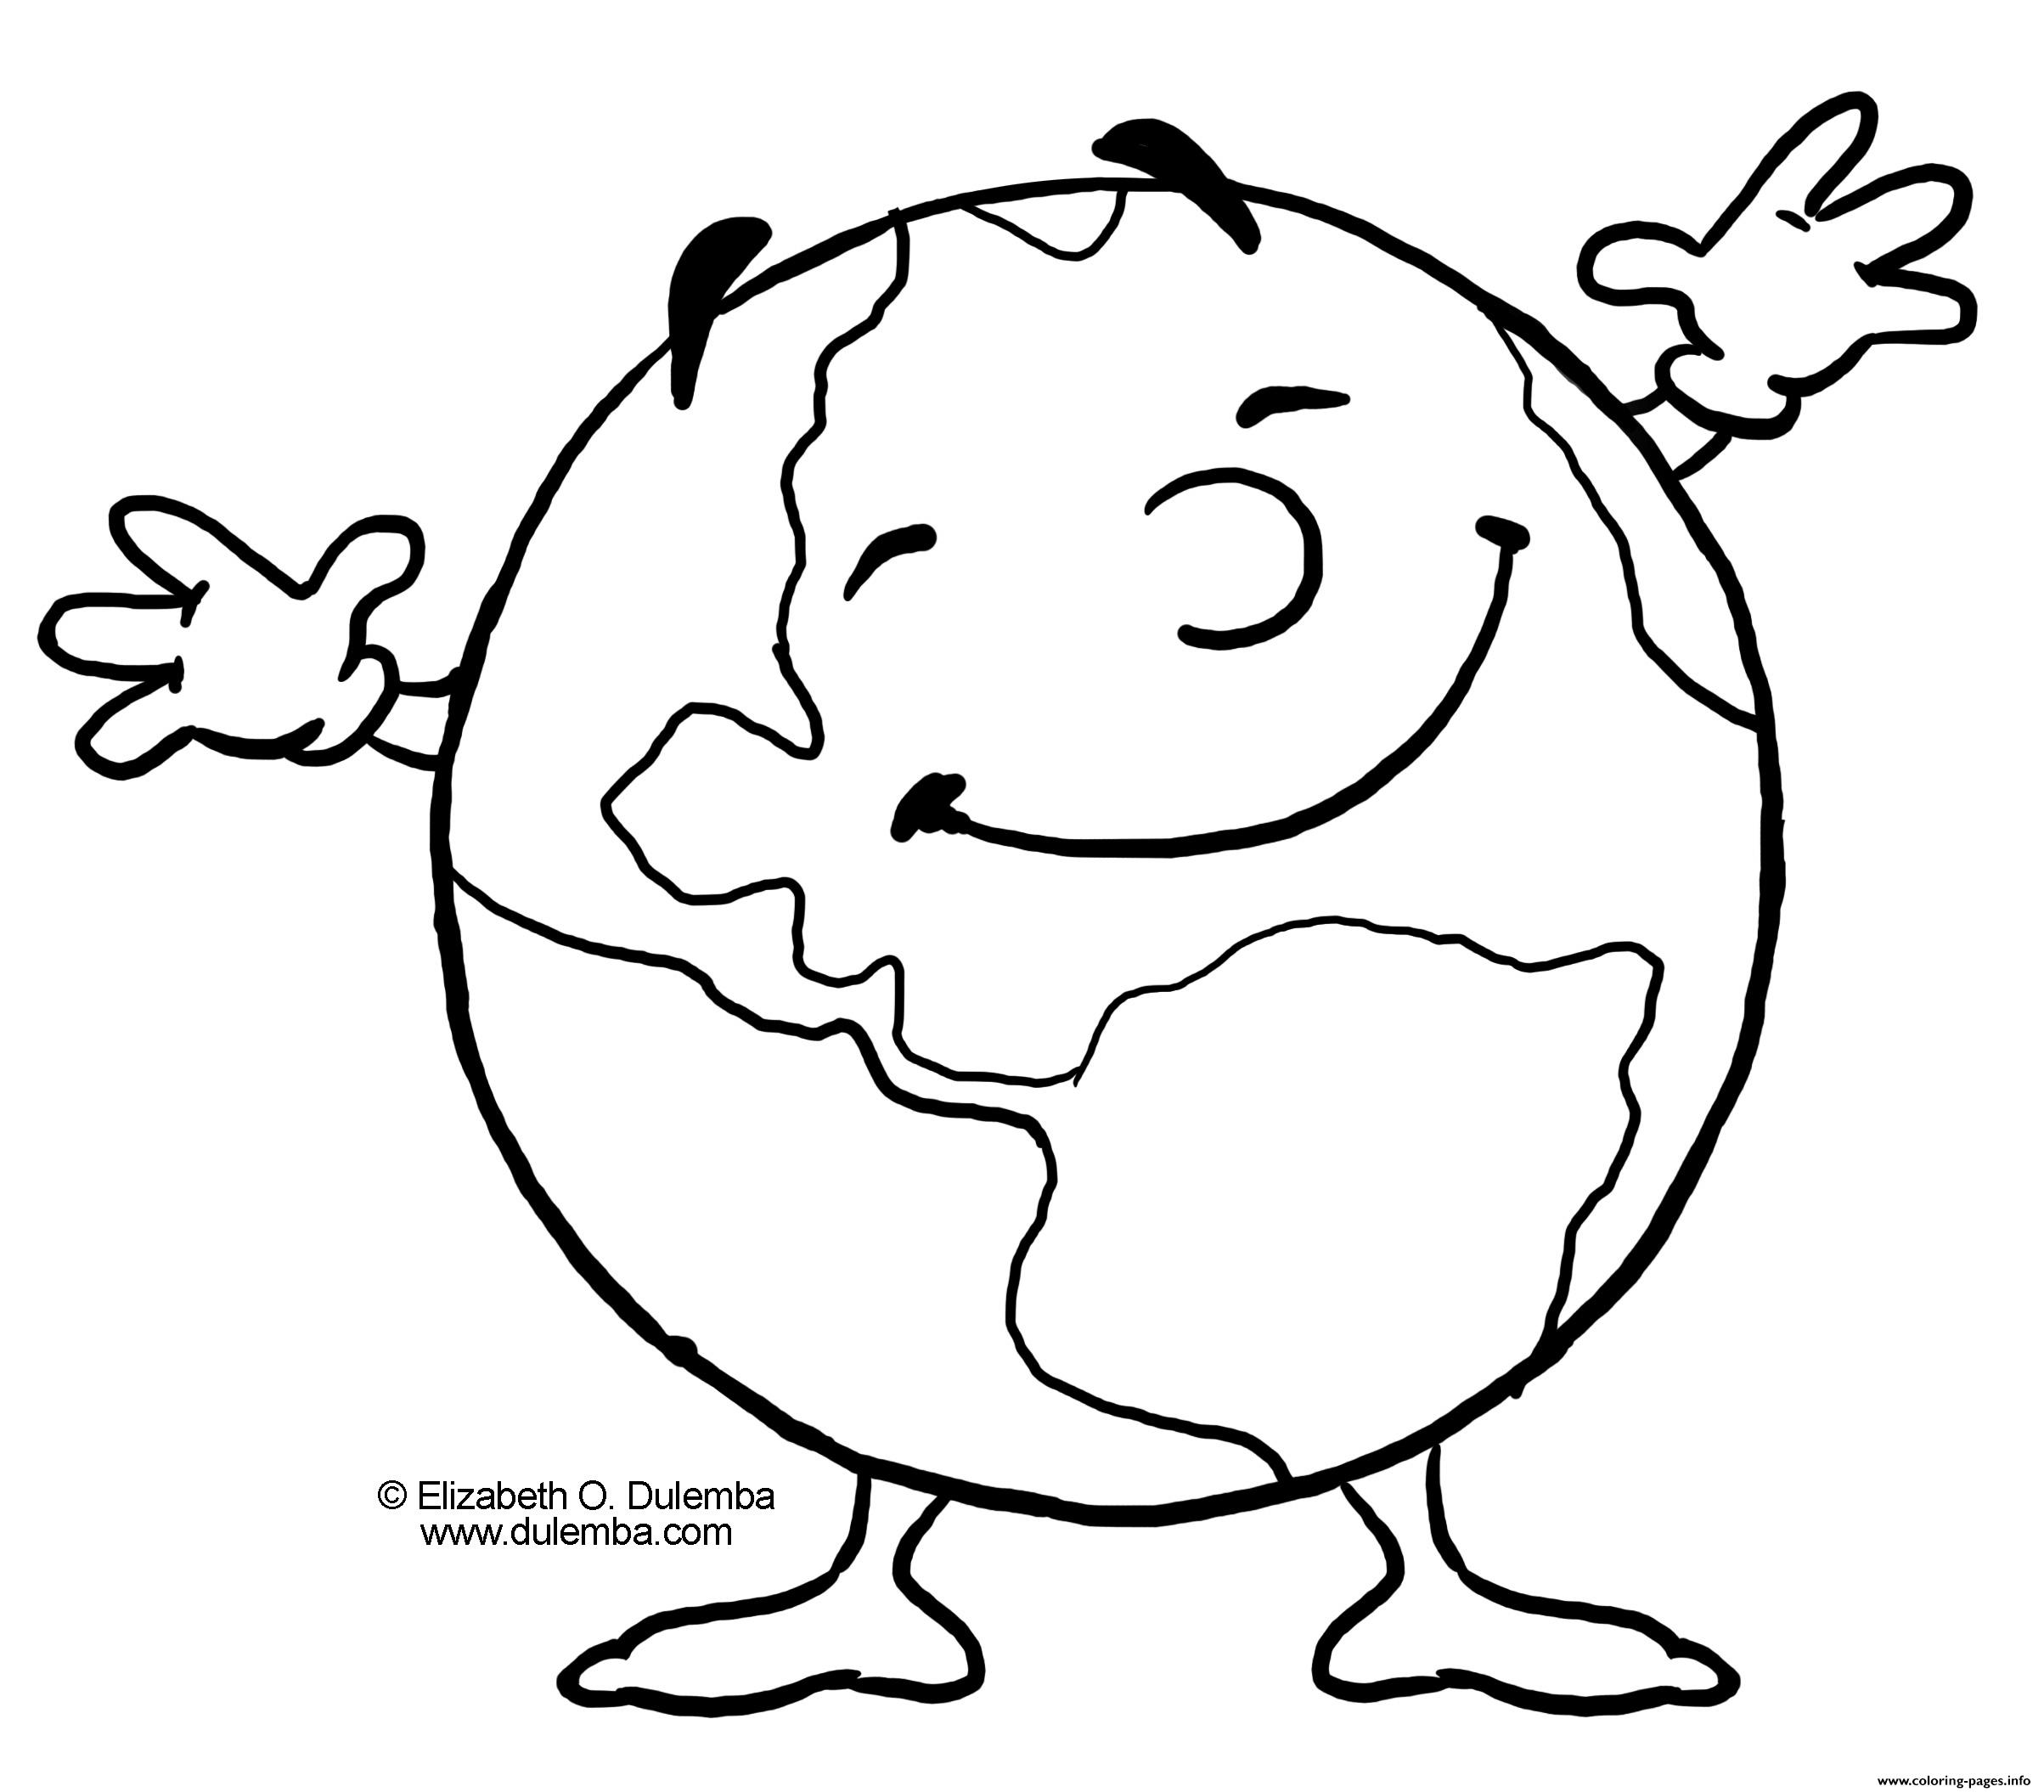 Preschool Earth Day Coloring Pages Printable